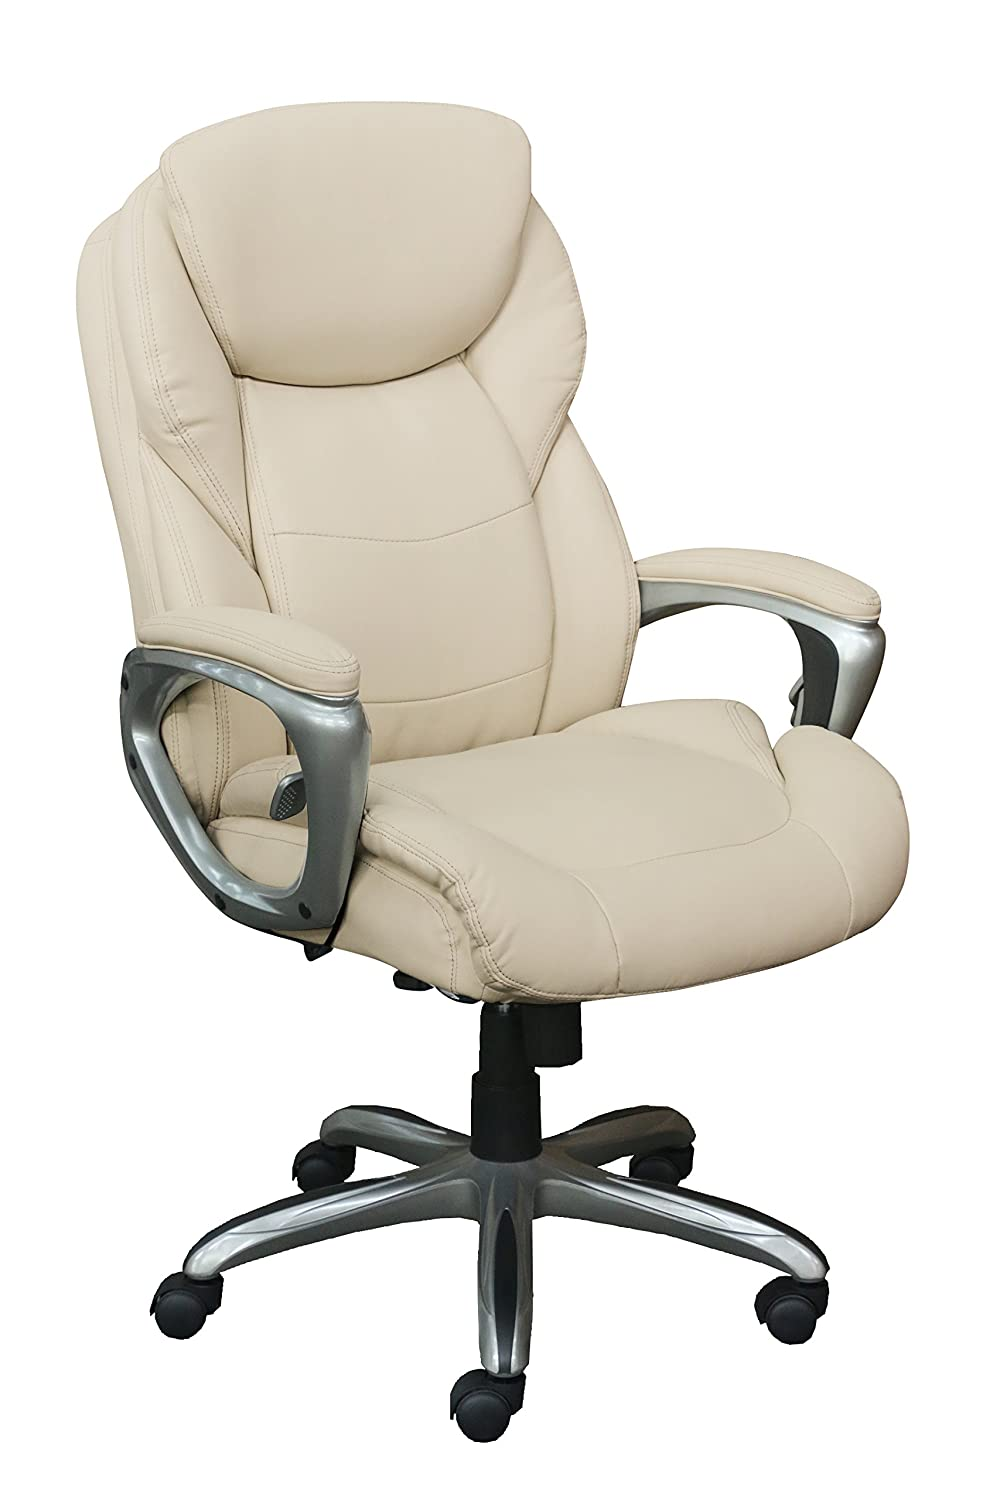 Serta Works My Fit Executive Office Chair with Active Lumbar Support, Inspired Ivory Bonded Leather